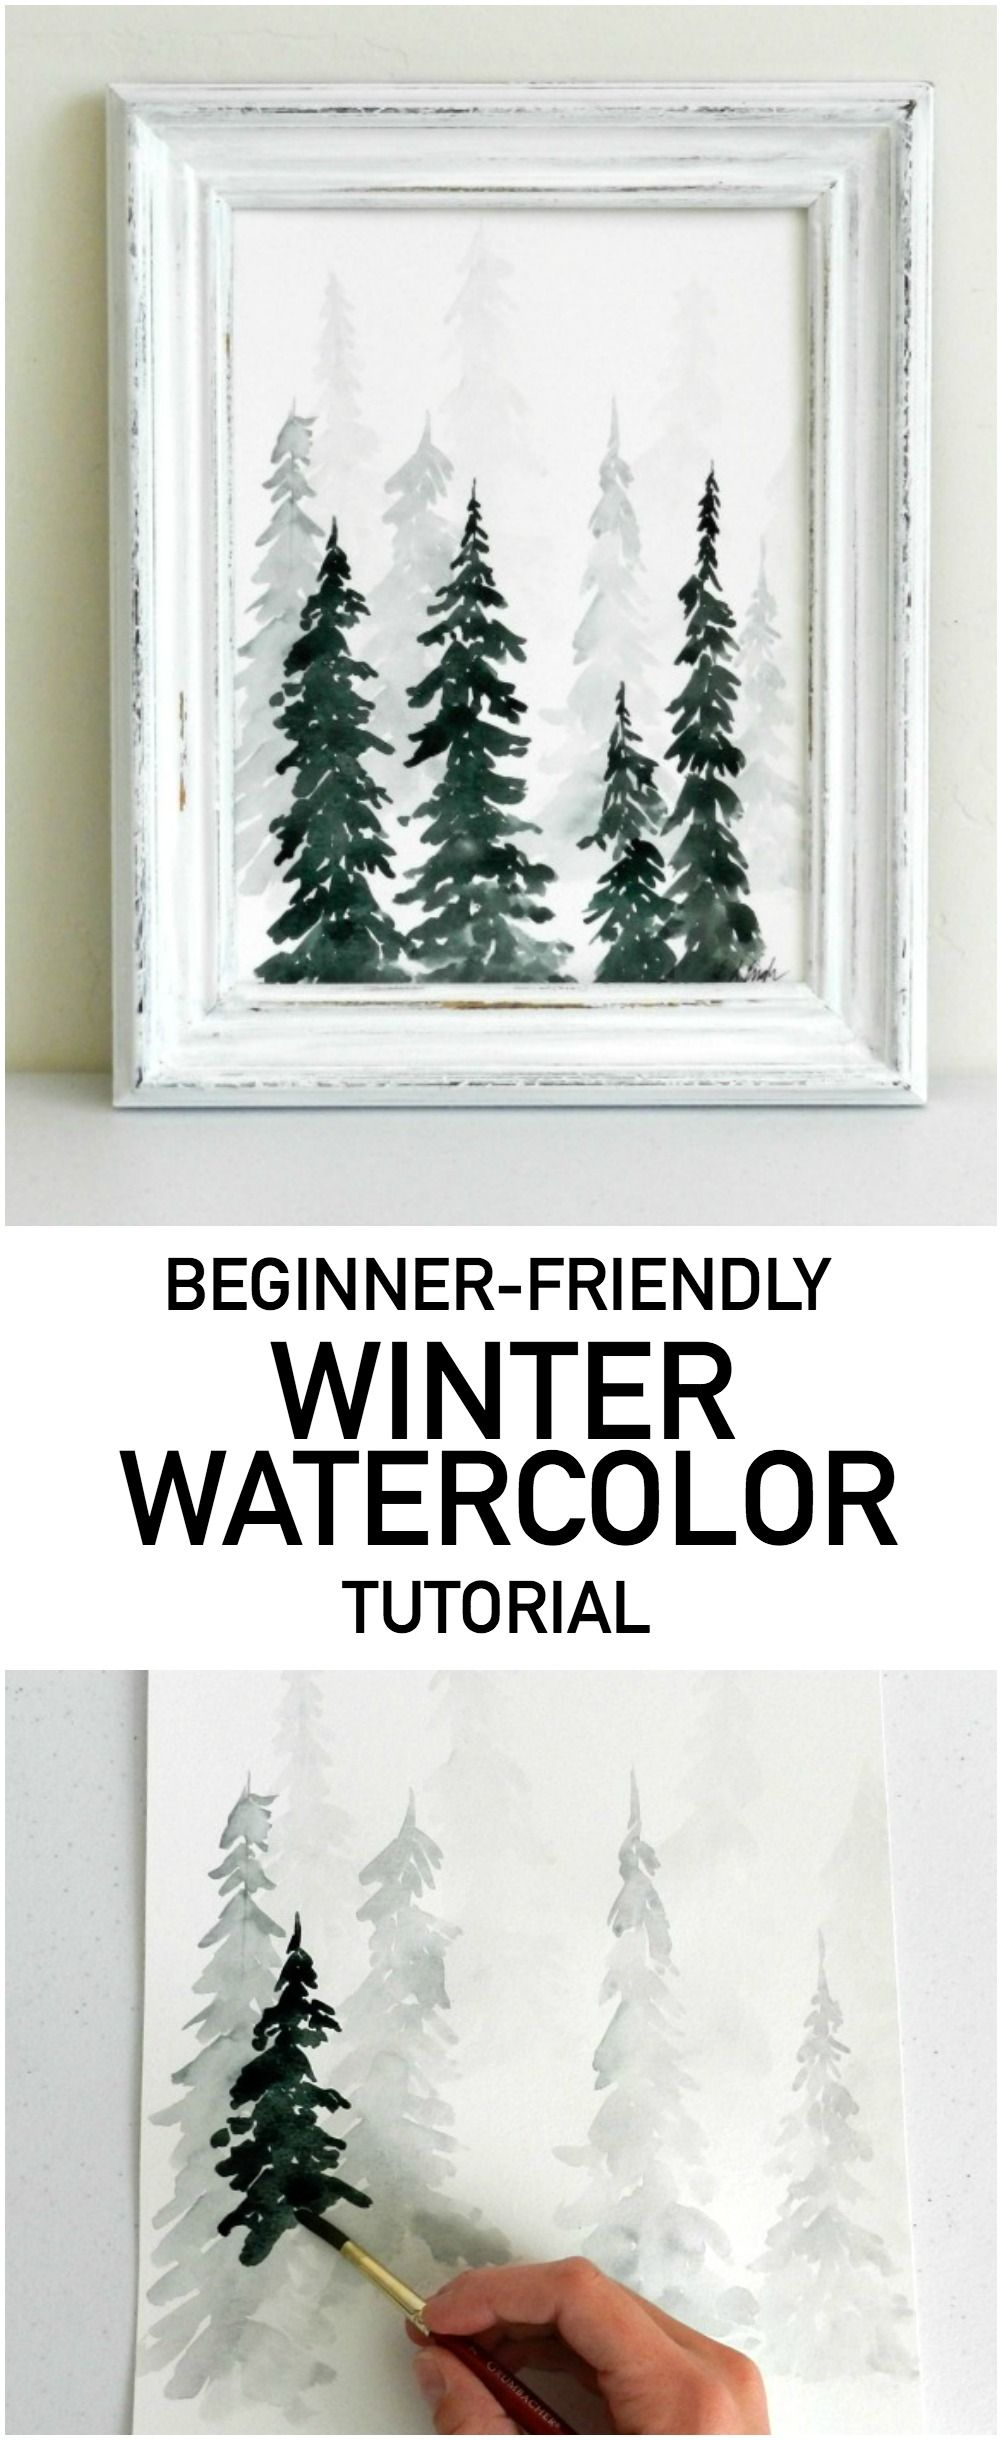 Get Your Winter On! Paint This Fast and Fabulous Watercolor Pine Forest #winterdecor